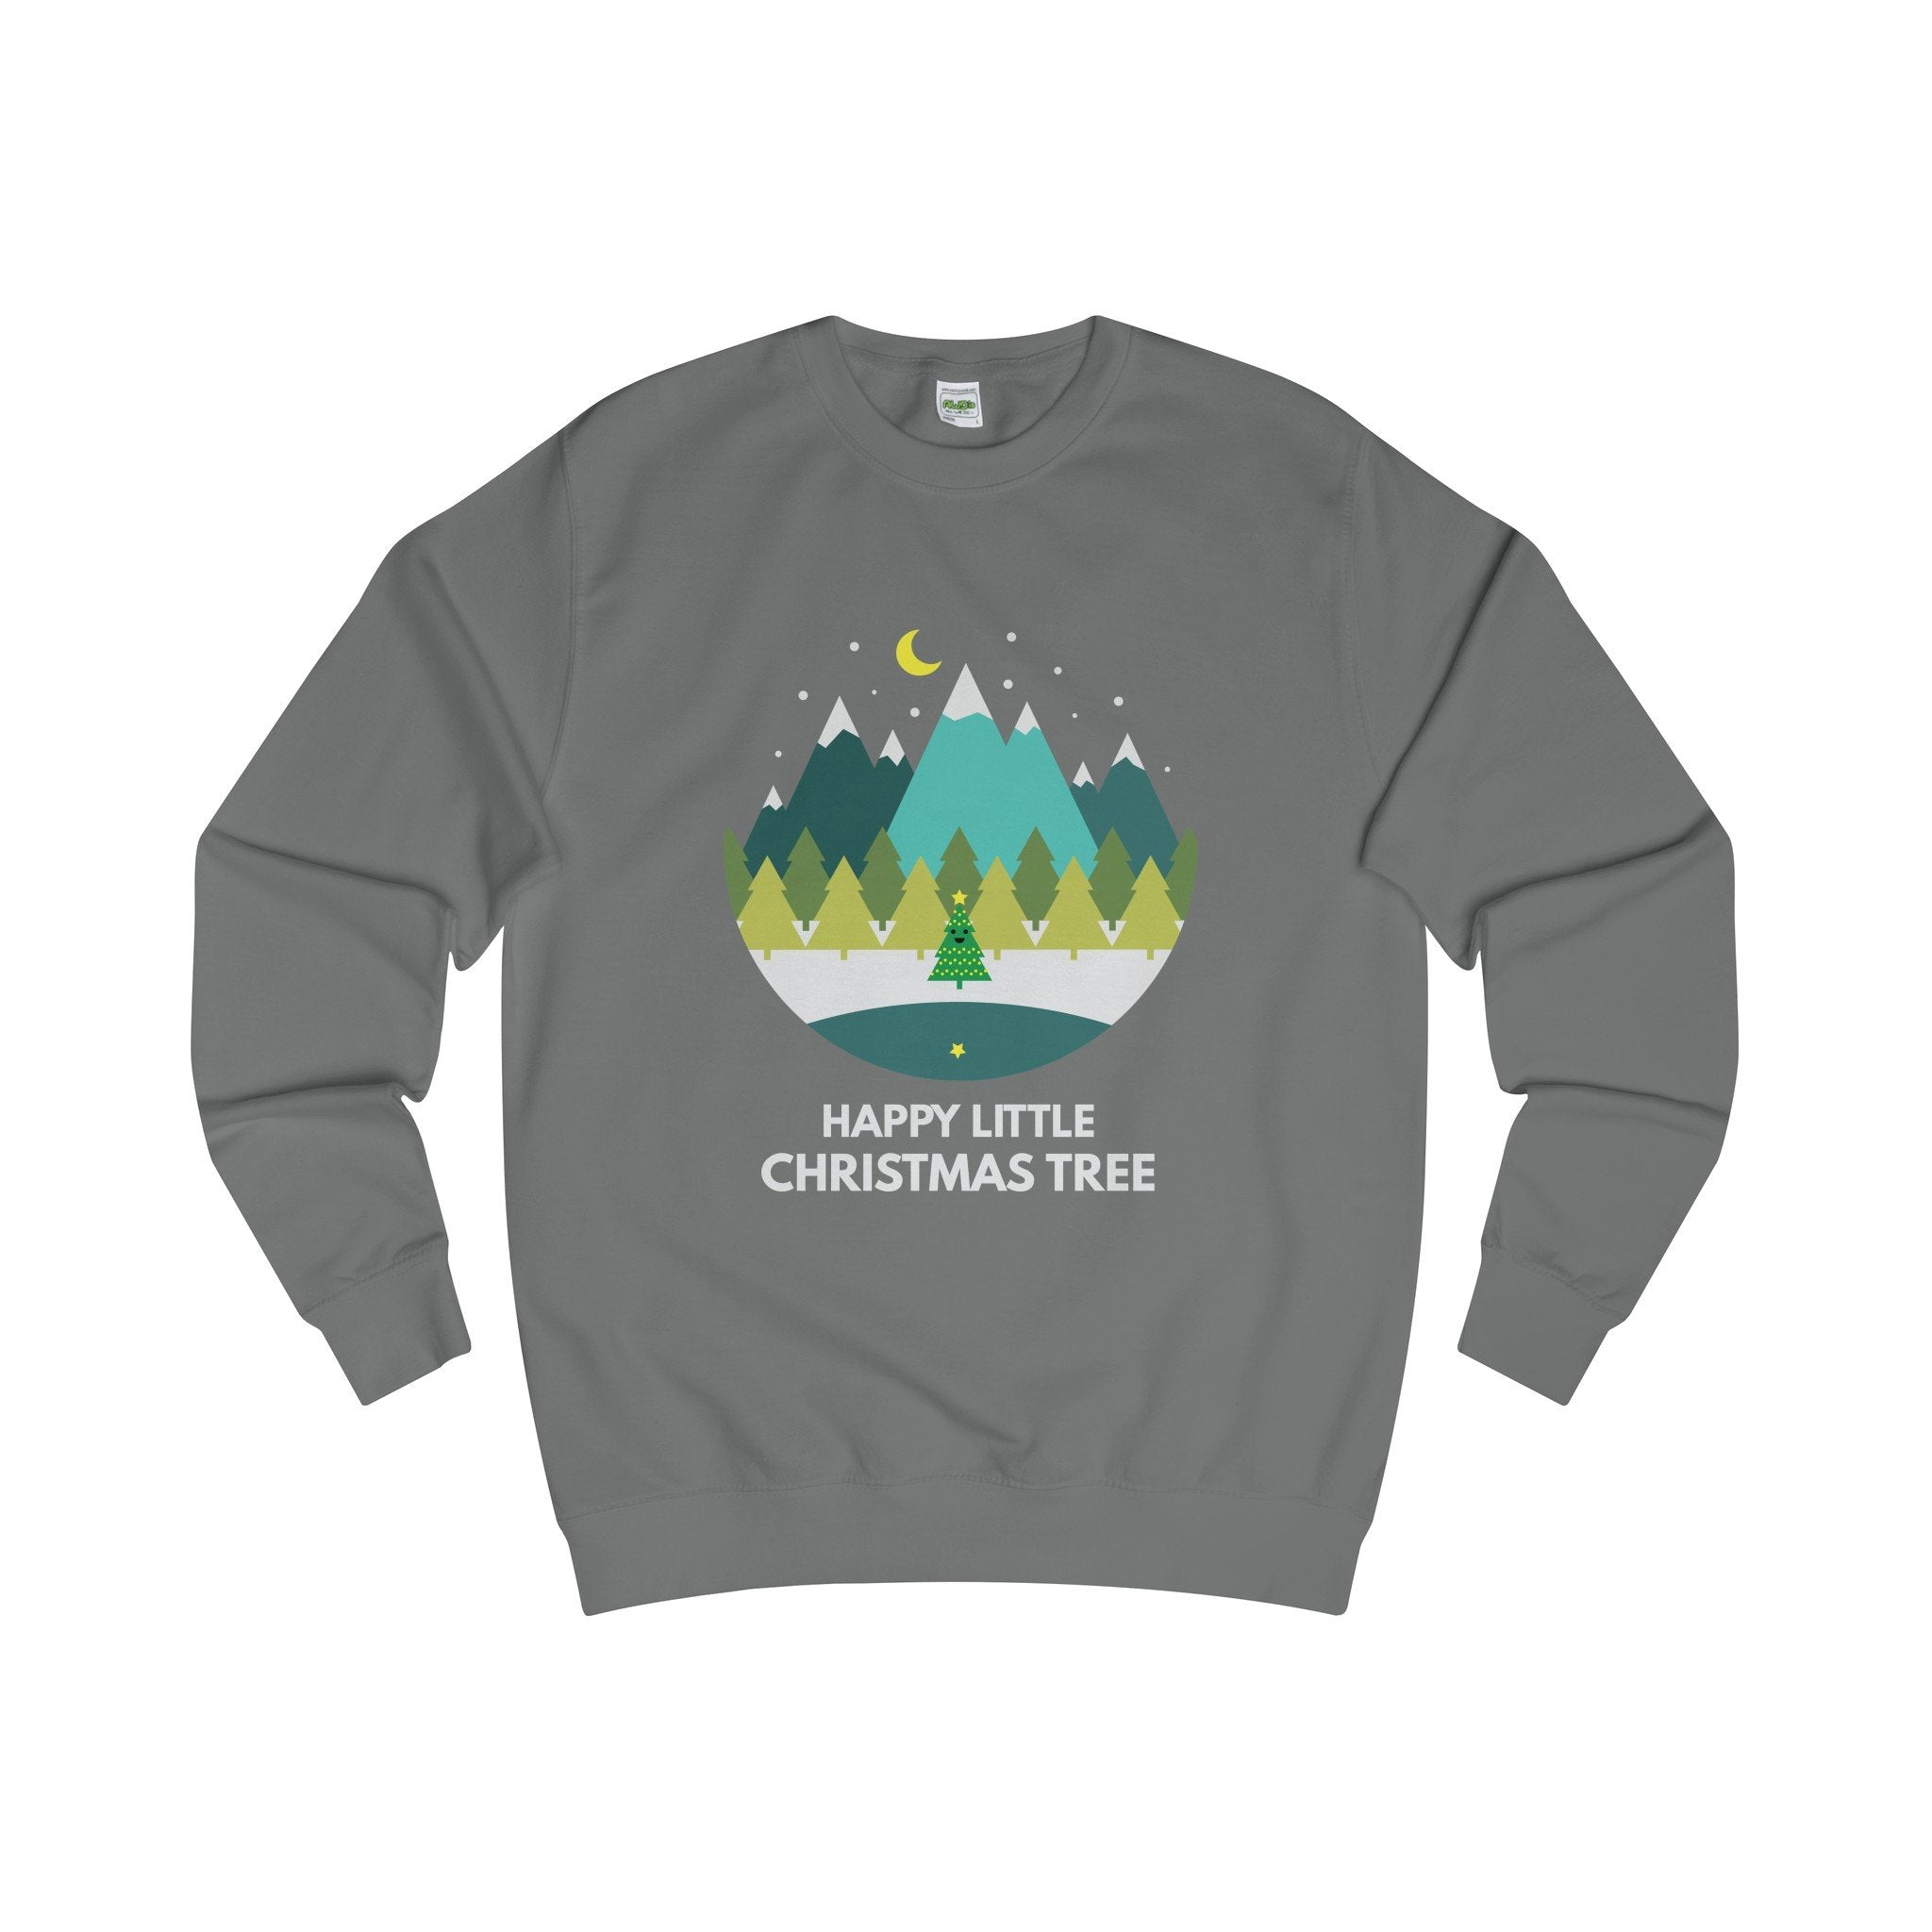 Happy Little Christmas Tree Jumper-Sweatshirt-Jolly Christmas Jumper